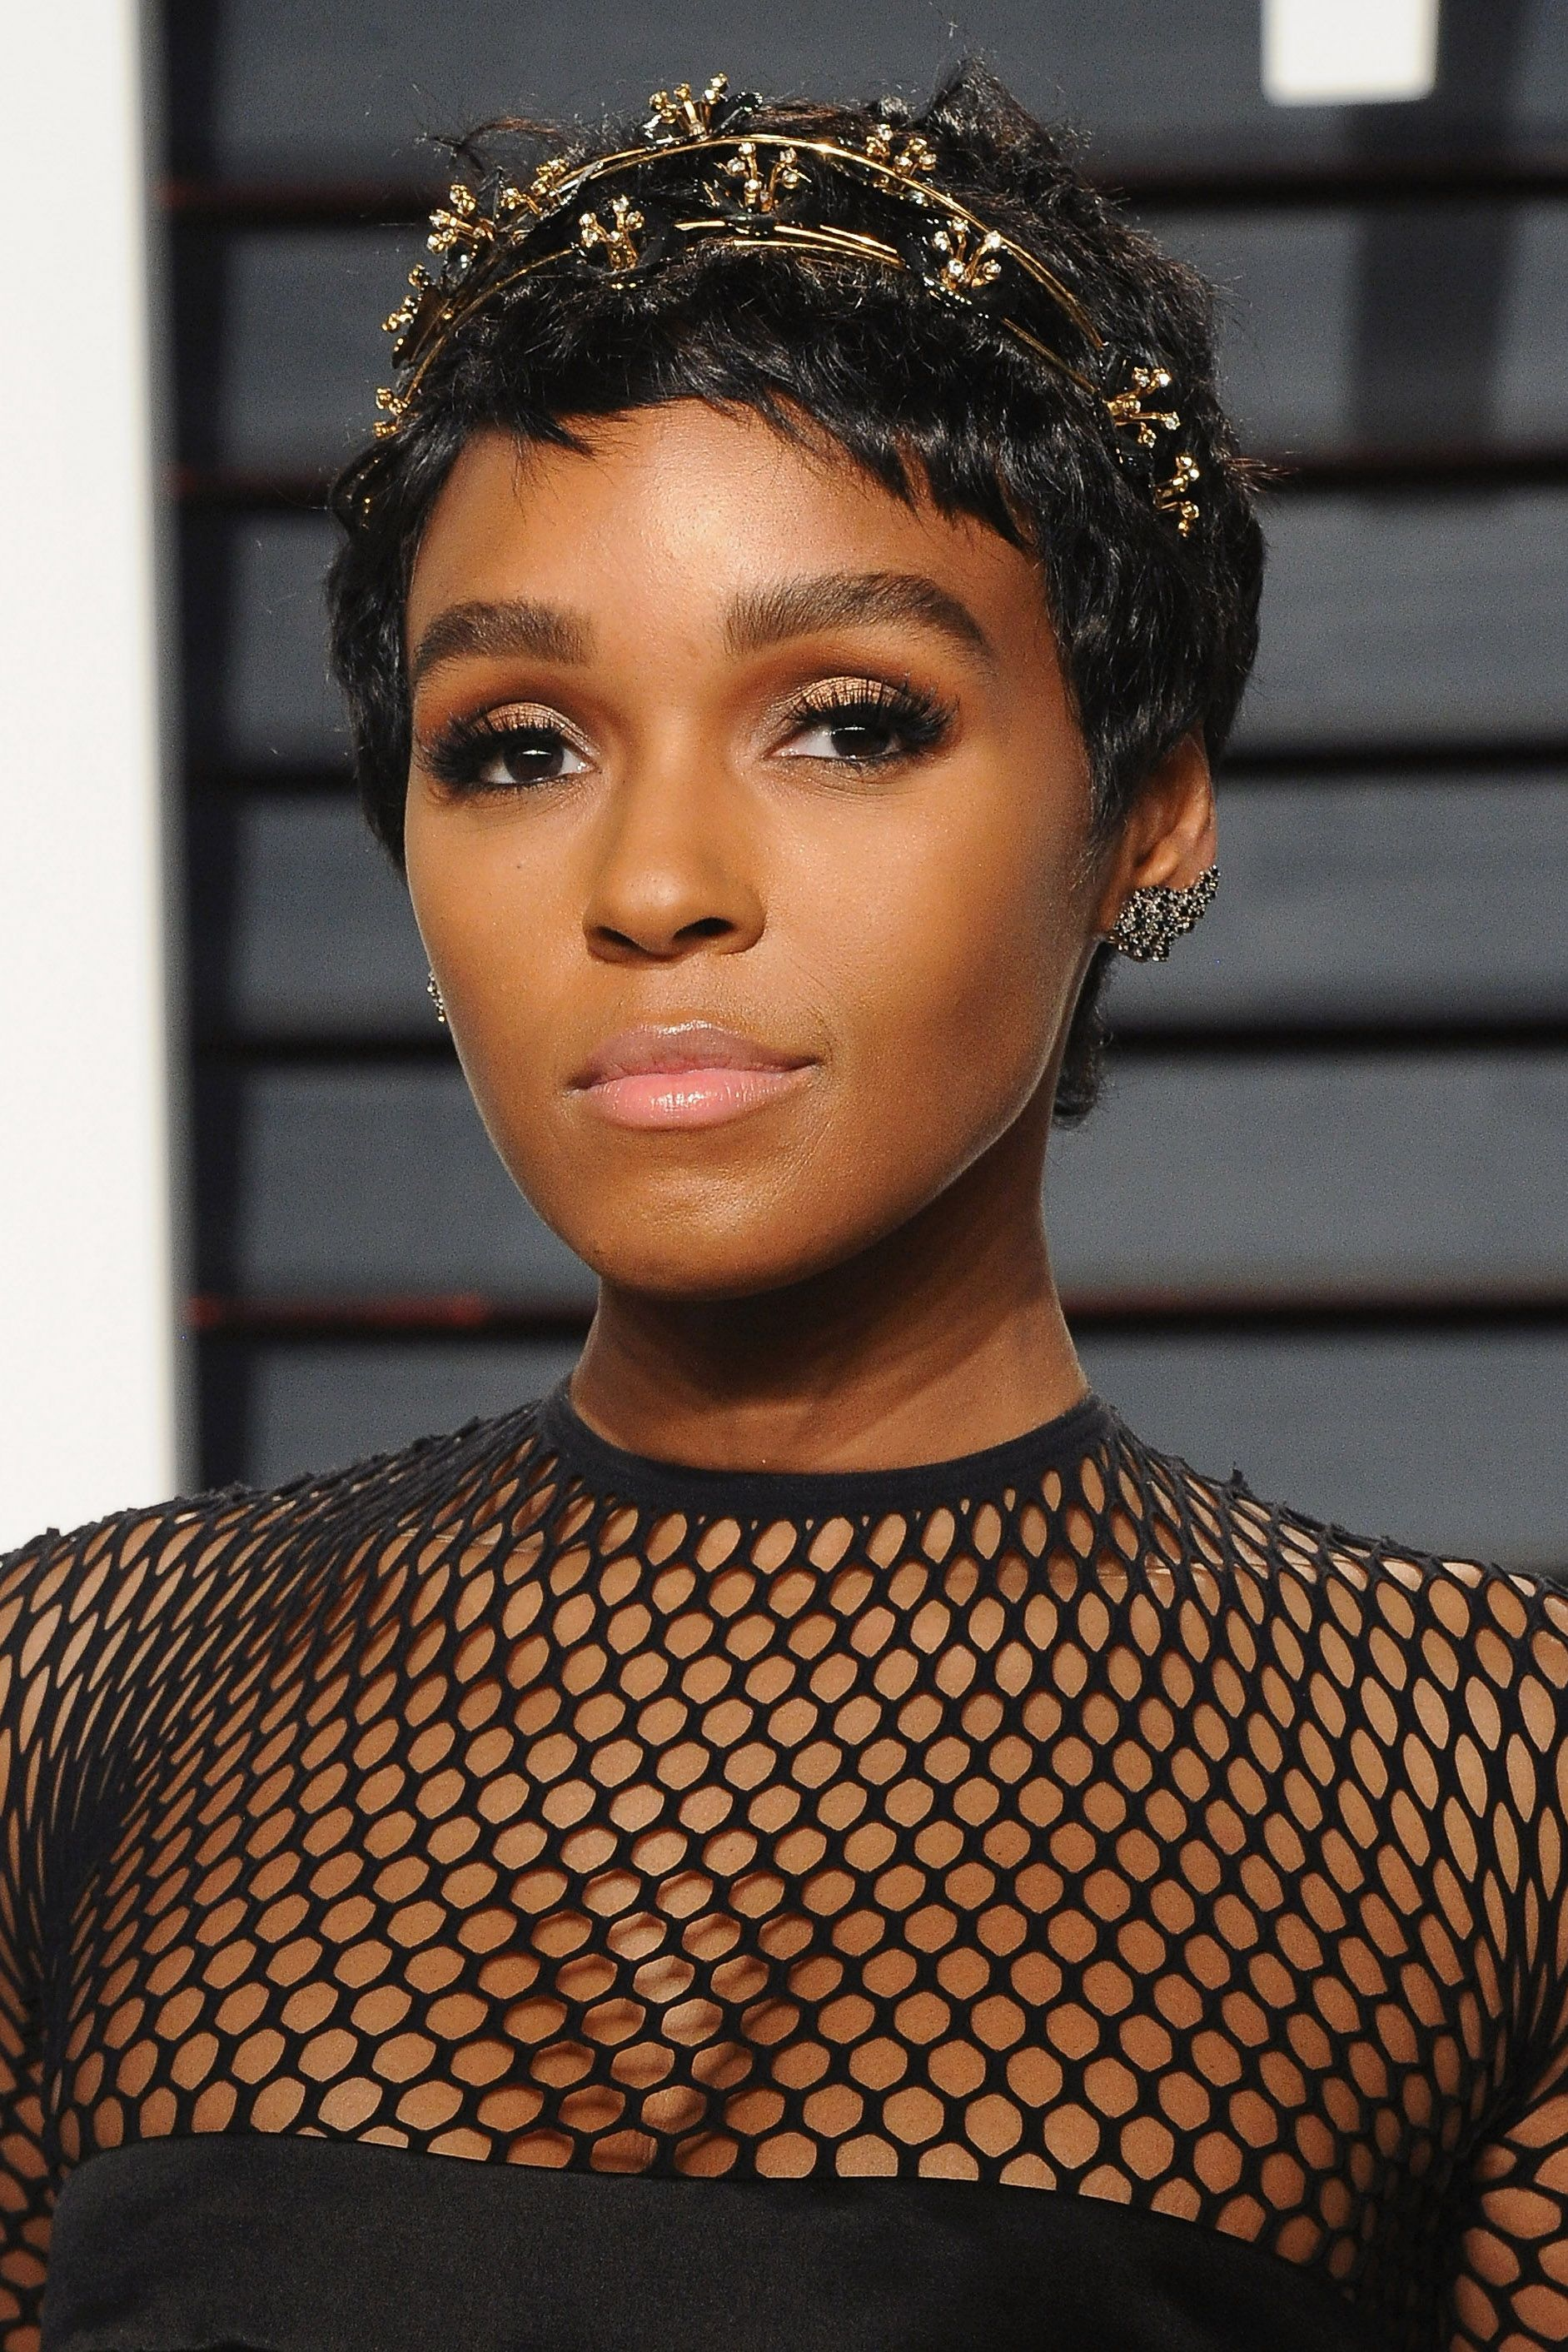 50 Best Pixie Cuts Iconic Celebrity Pixie Hairstyles